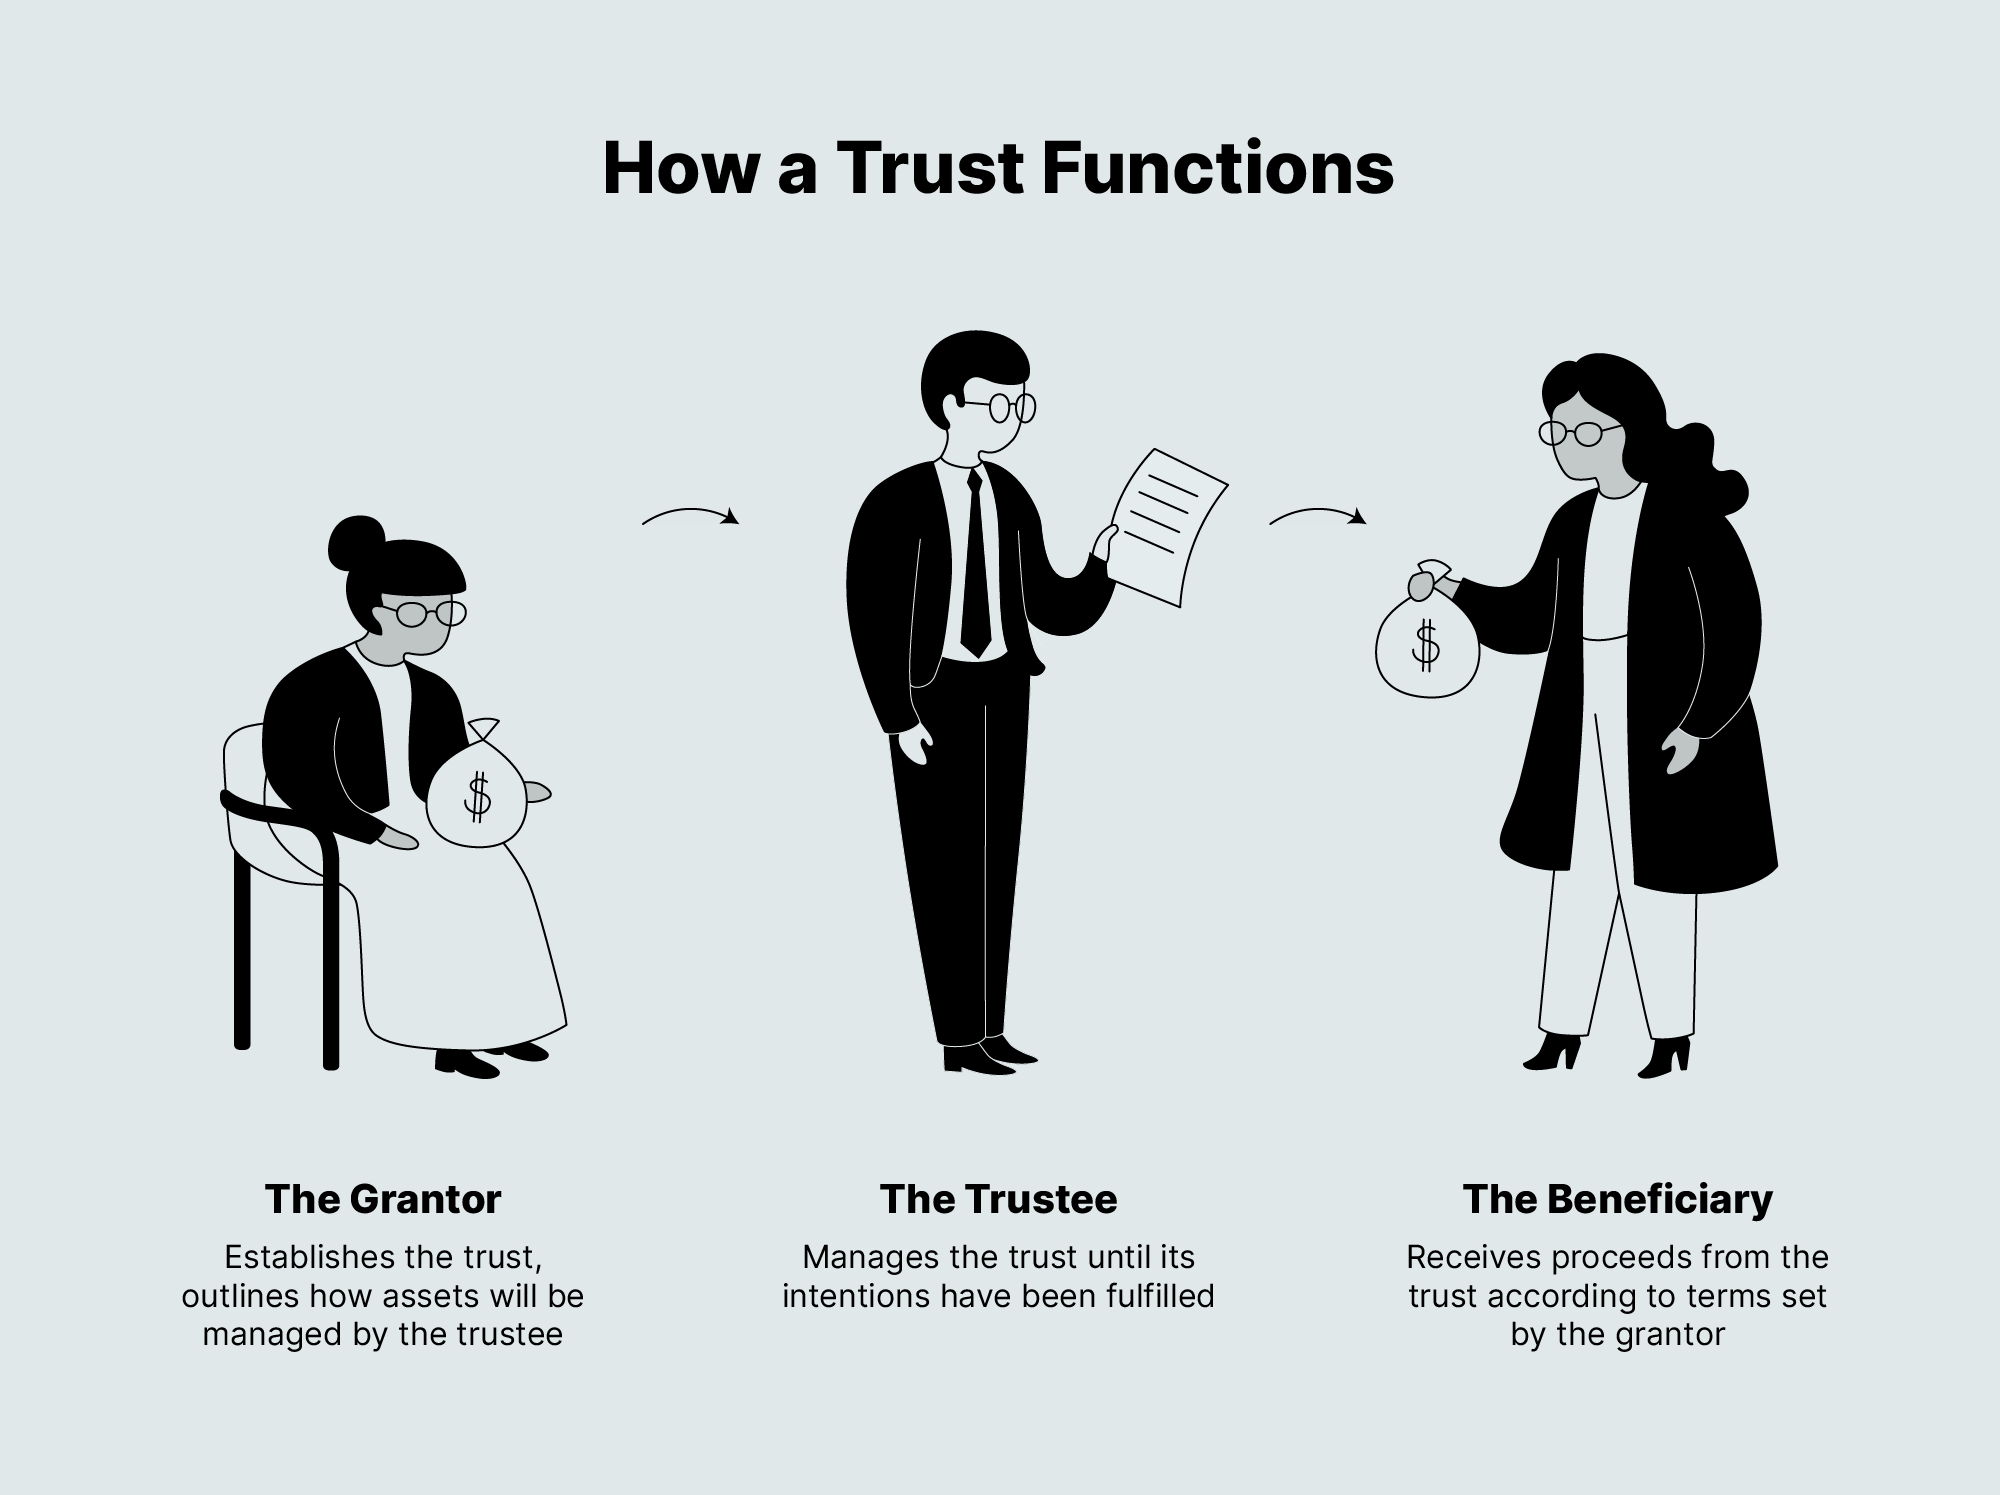 how a trust functions